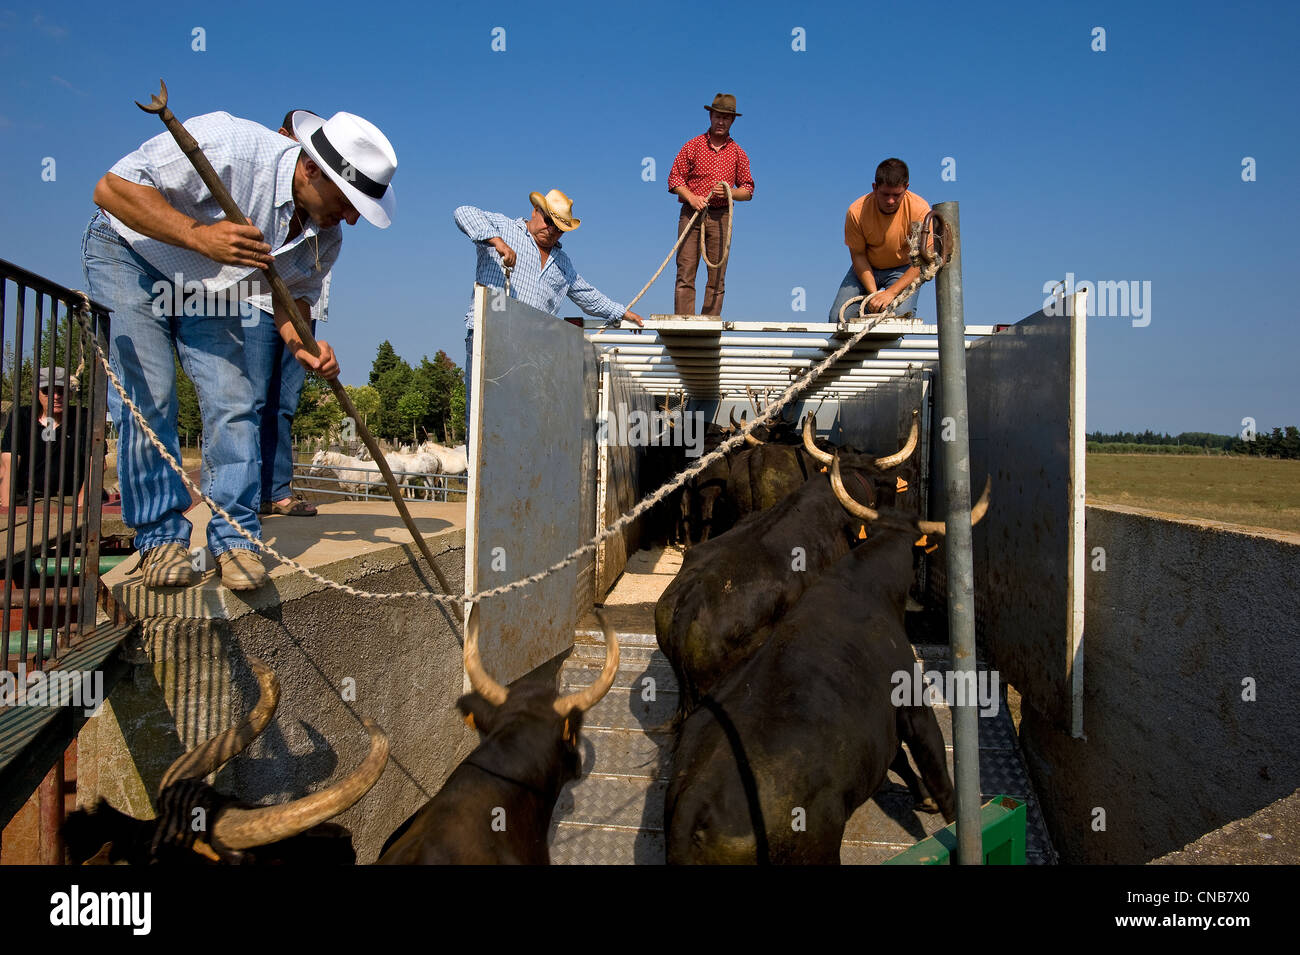 France, Gard, Camargue, Generac, the Camargue bull, called Biou de Camargue, is a wild and dangerous animal which - Stock Image